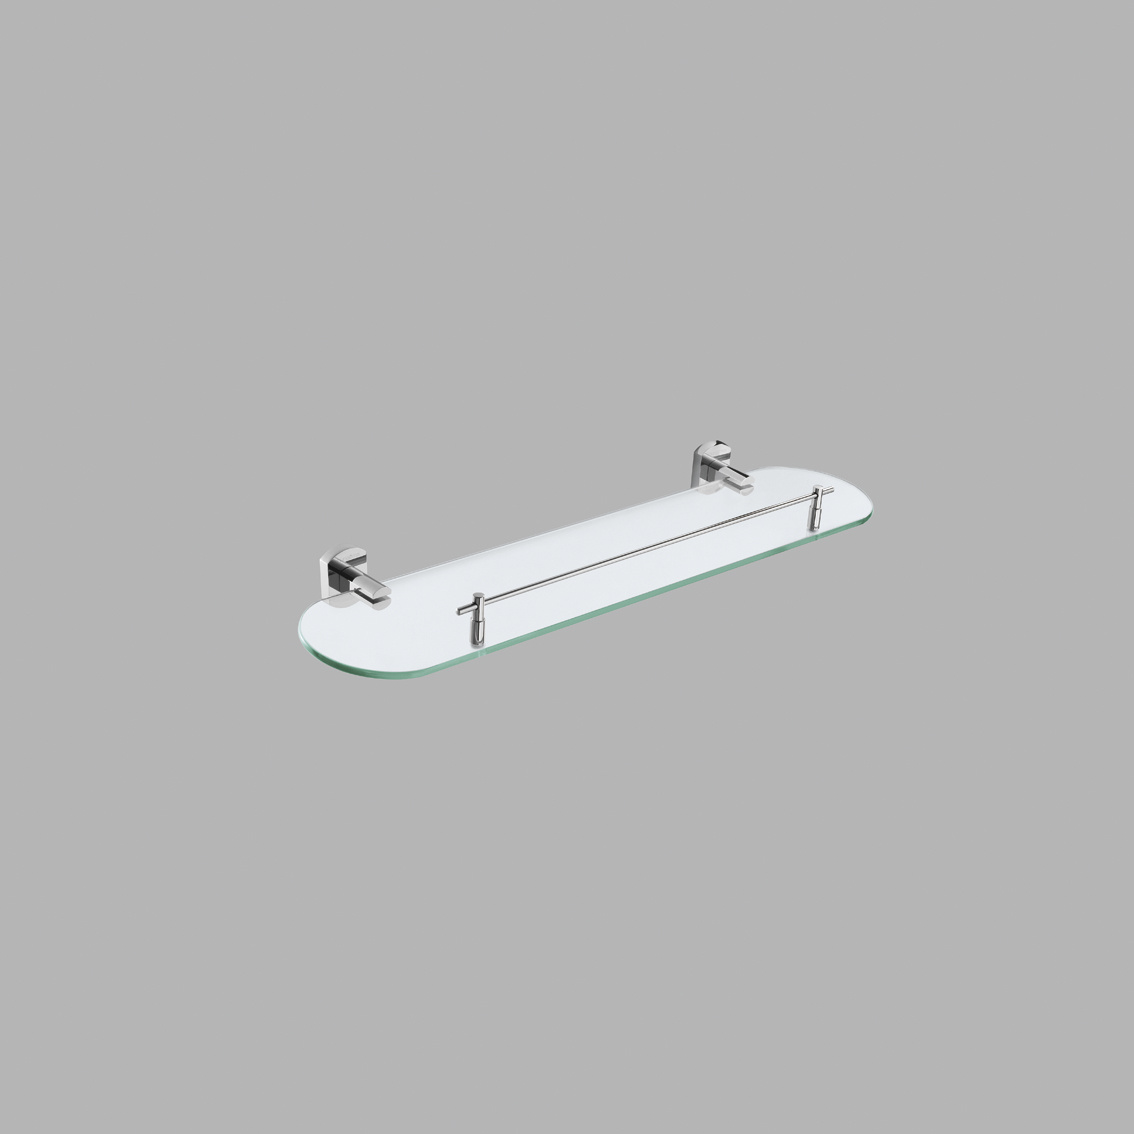 Top BATHROOM GLASS SHELVES 16 INCHES IN BATH ACCESSORIES - COMPARE. 1134 x 1134 · 253 kB · jpeg